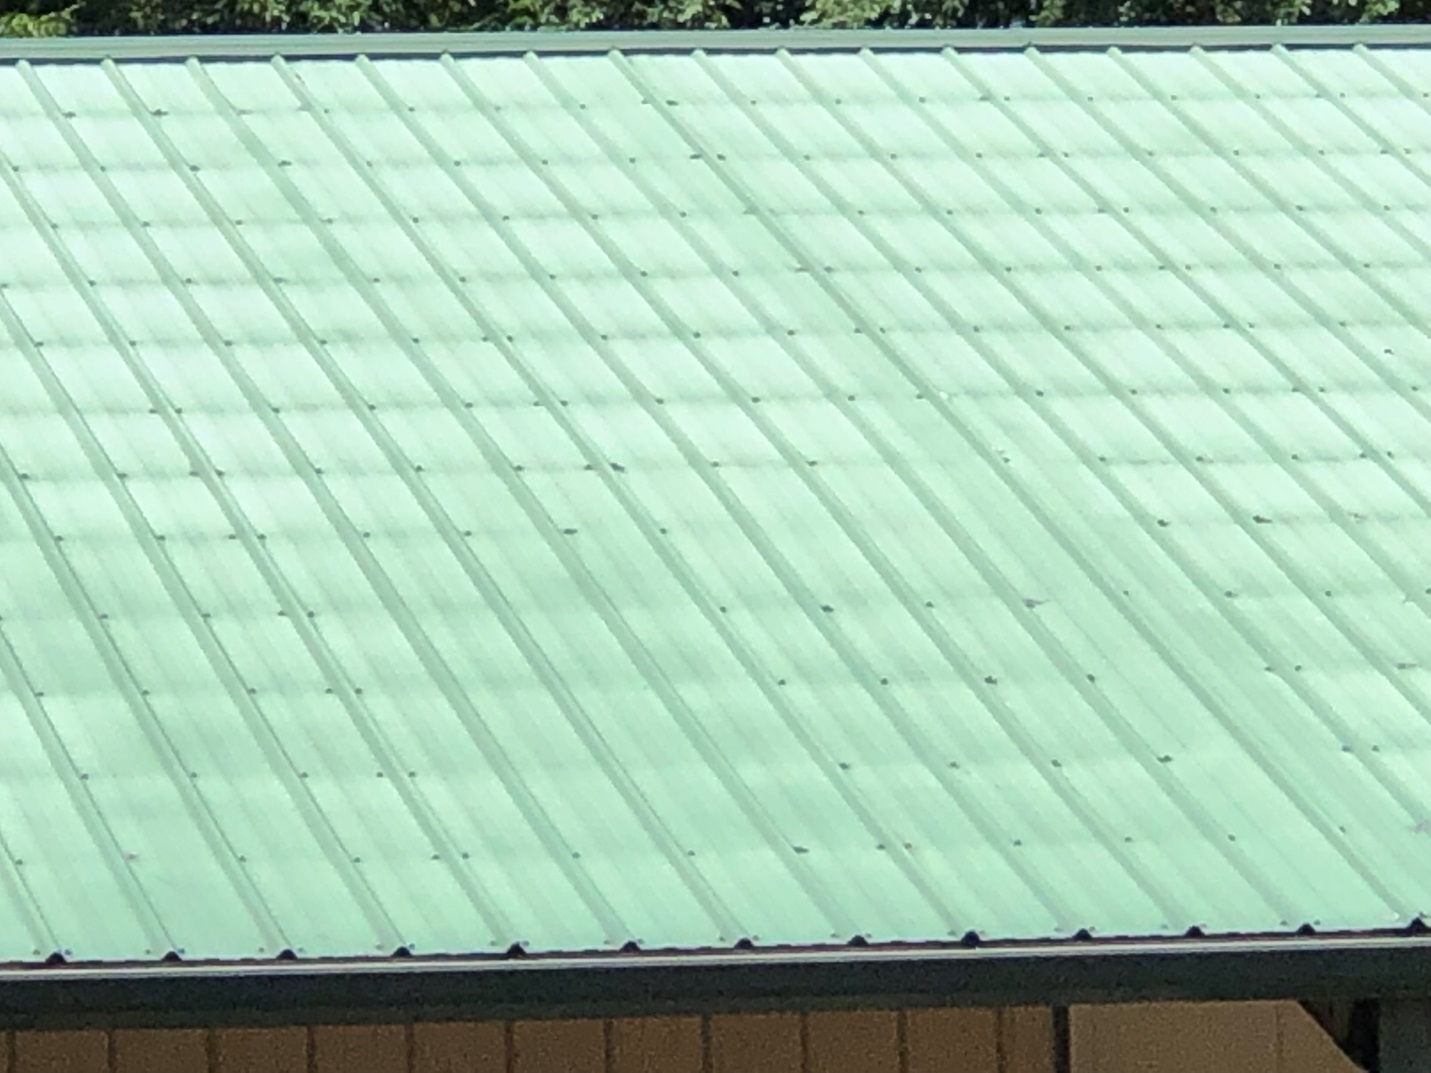 Steel Roofing Fade and Chalk